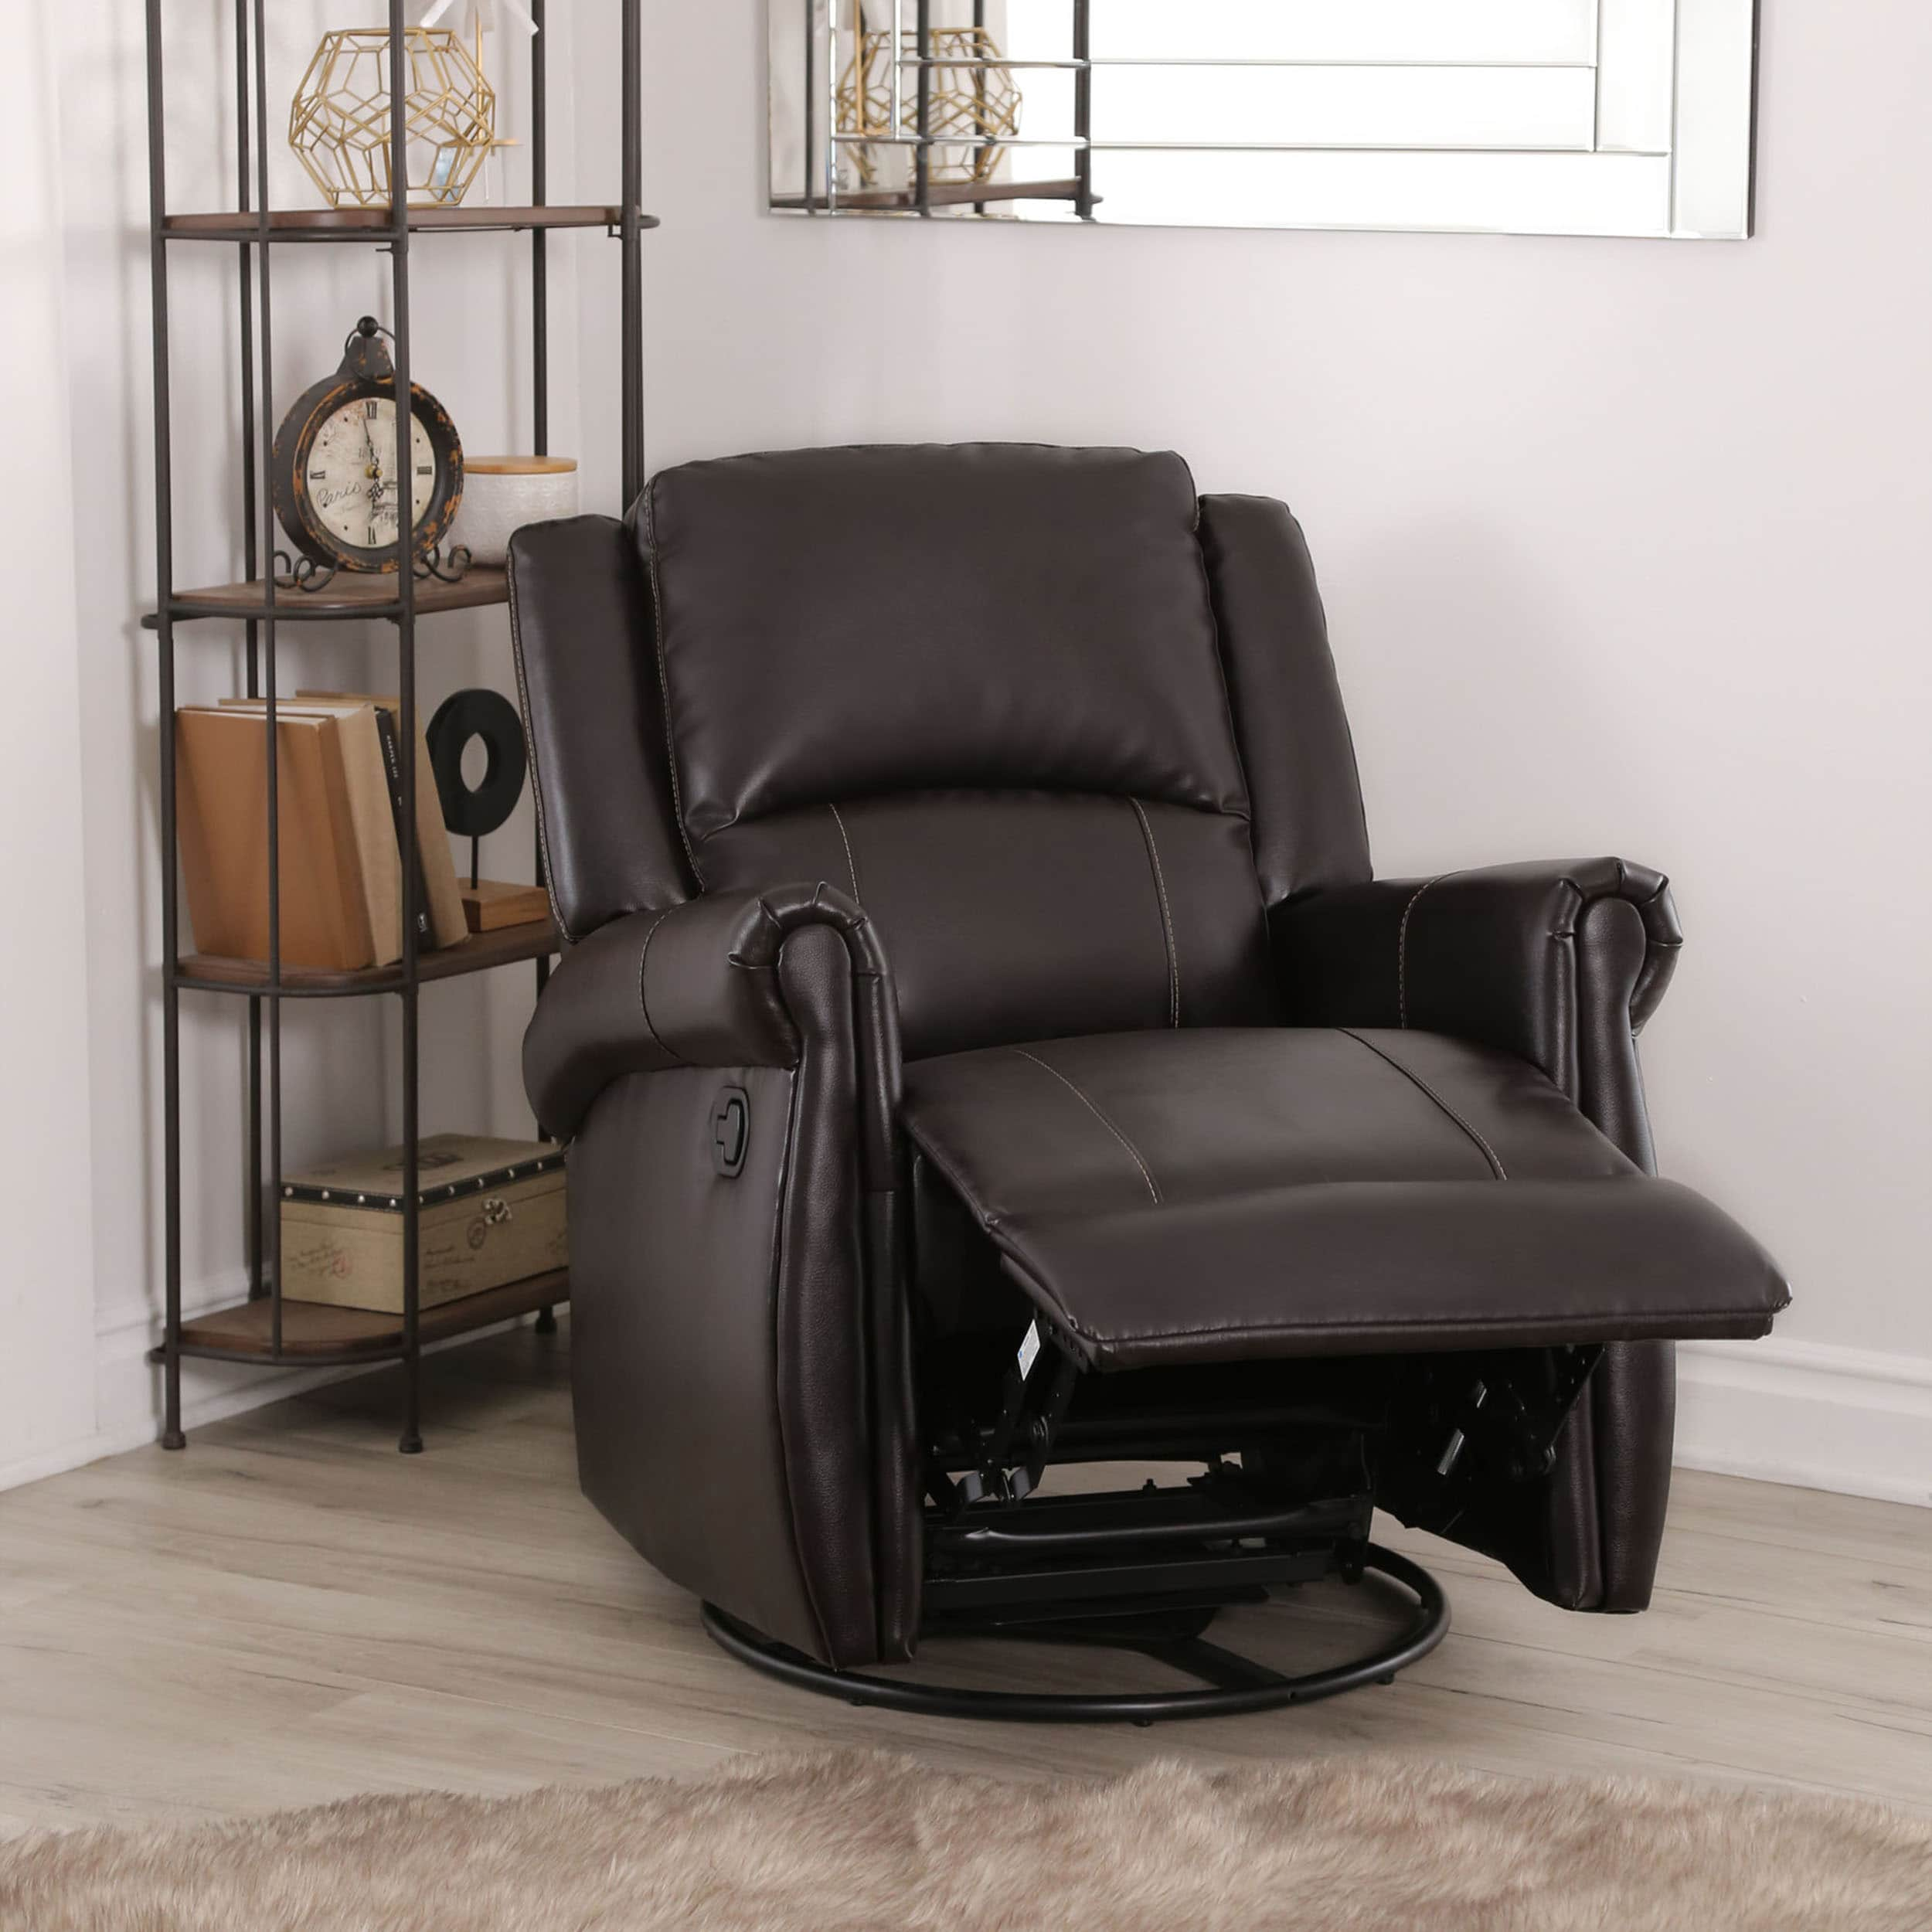 Shop abbyson elena dark brown swivel glider recliner chair on sale free shipping today overstock com 10416553